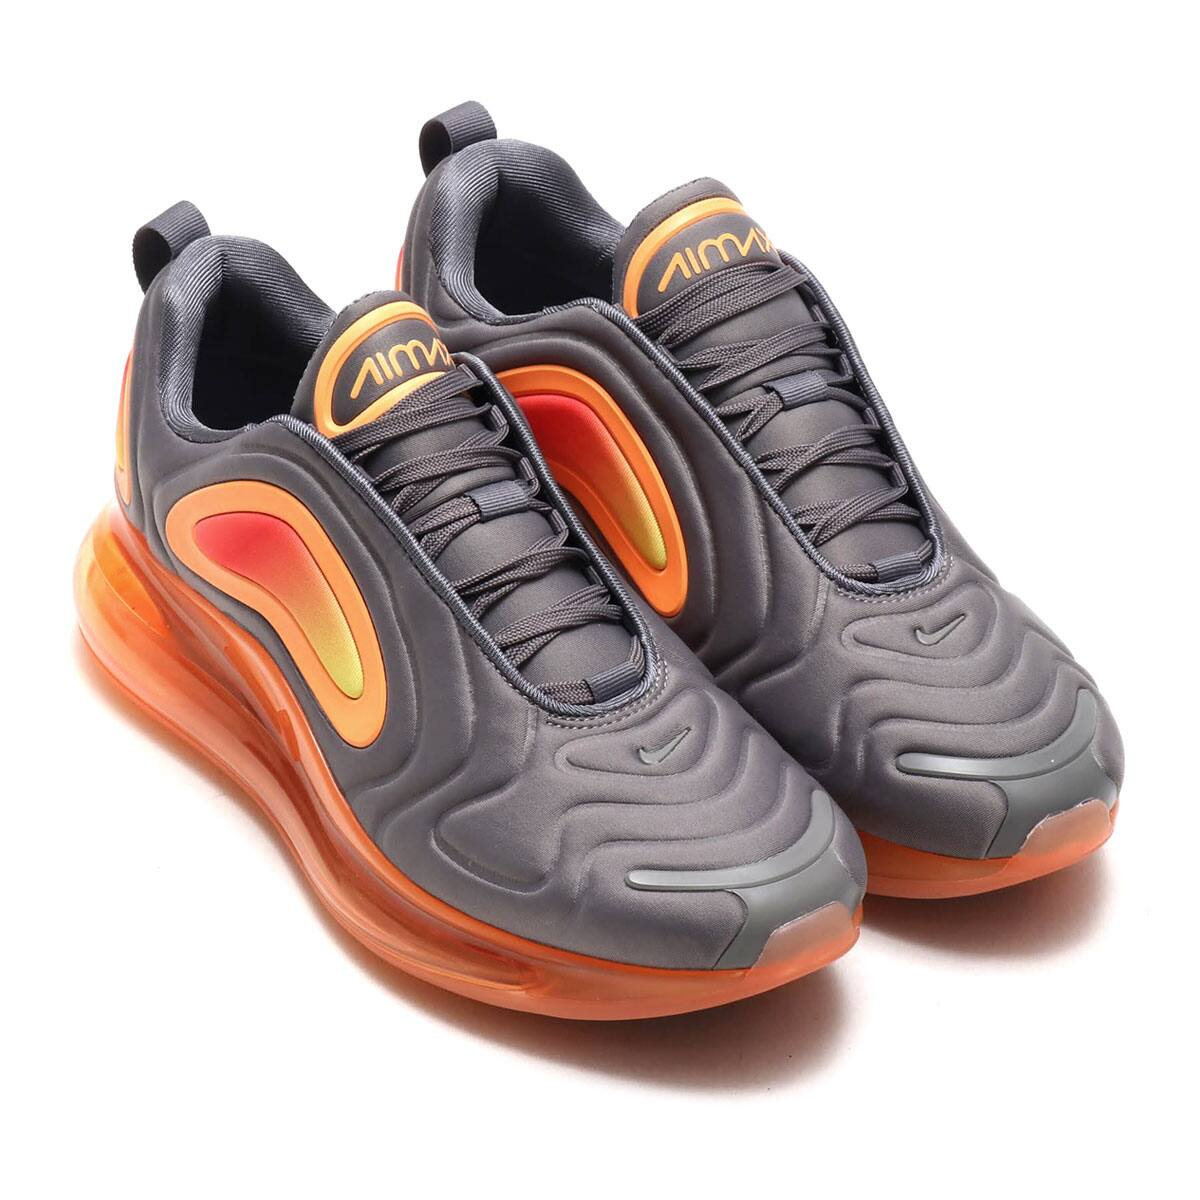 NIKE AIR MAX 720 GNSMK/GNSMK-FL ORNG-ORNG PLS 19SU-S_photo_large